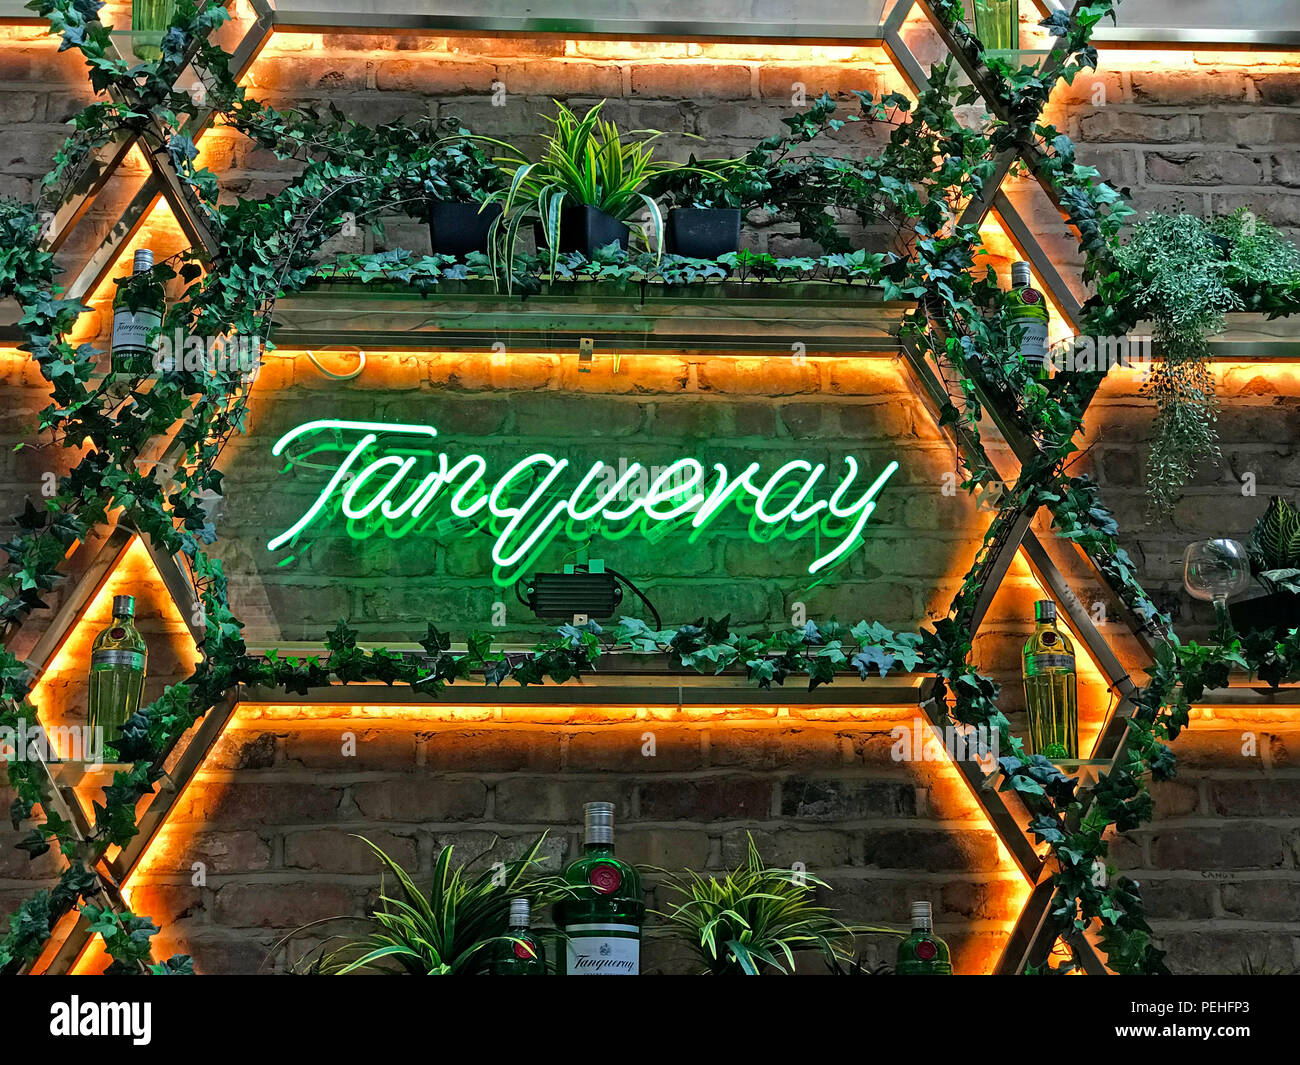 Tarqueray Gin display, Dukes 92, Castlefield, Manchester, North west England,Uk - Stock Image